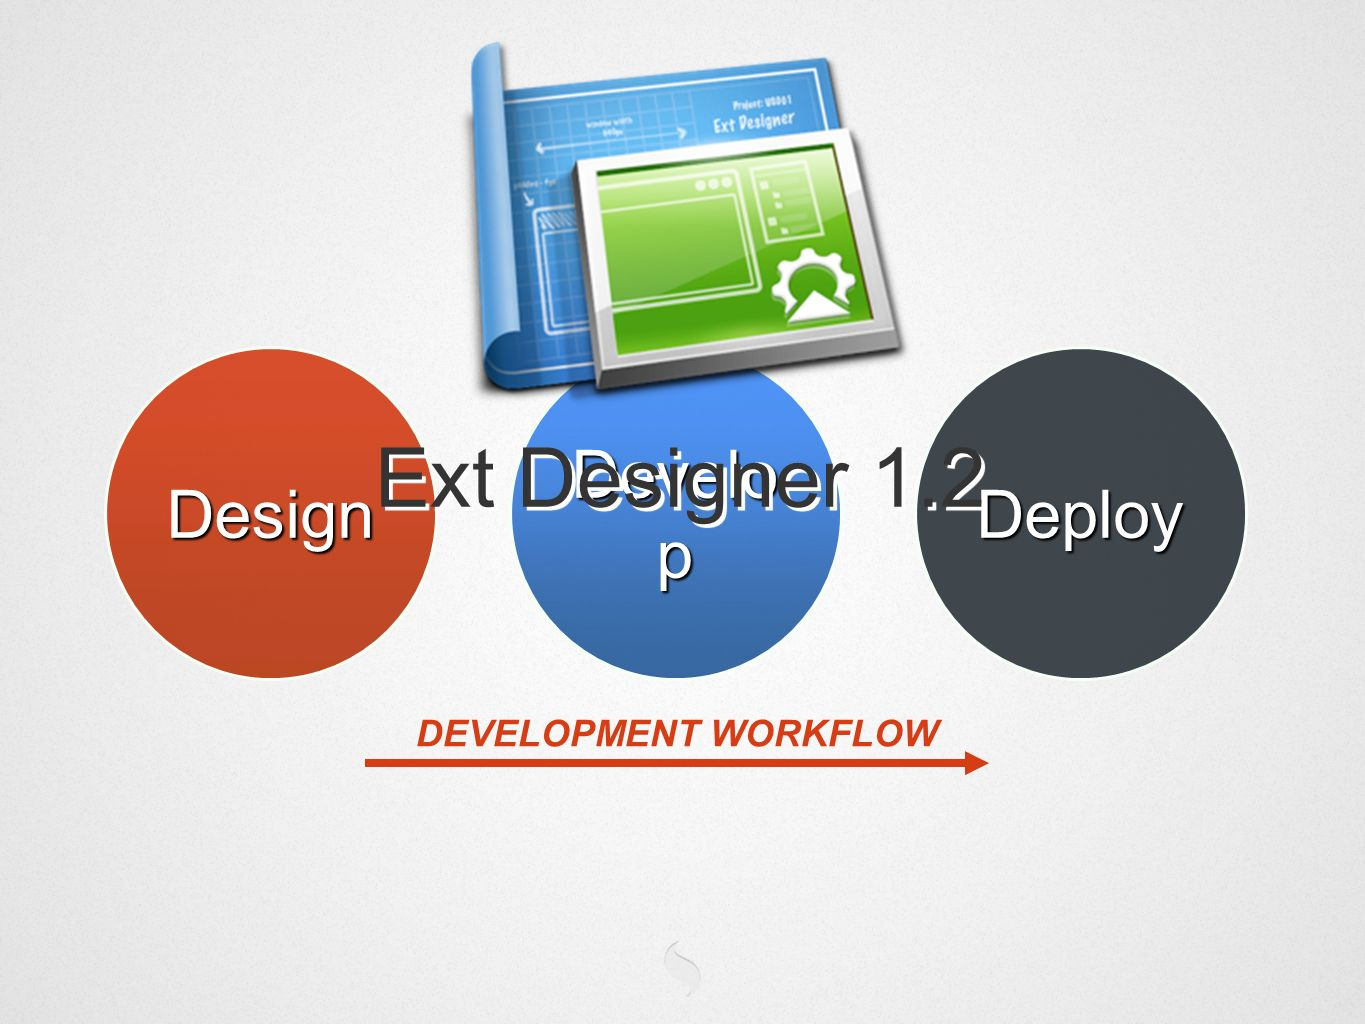 Design Develo p Deploy DEVELOPMENT WORKFLOW Ext Designer 1.2